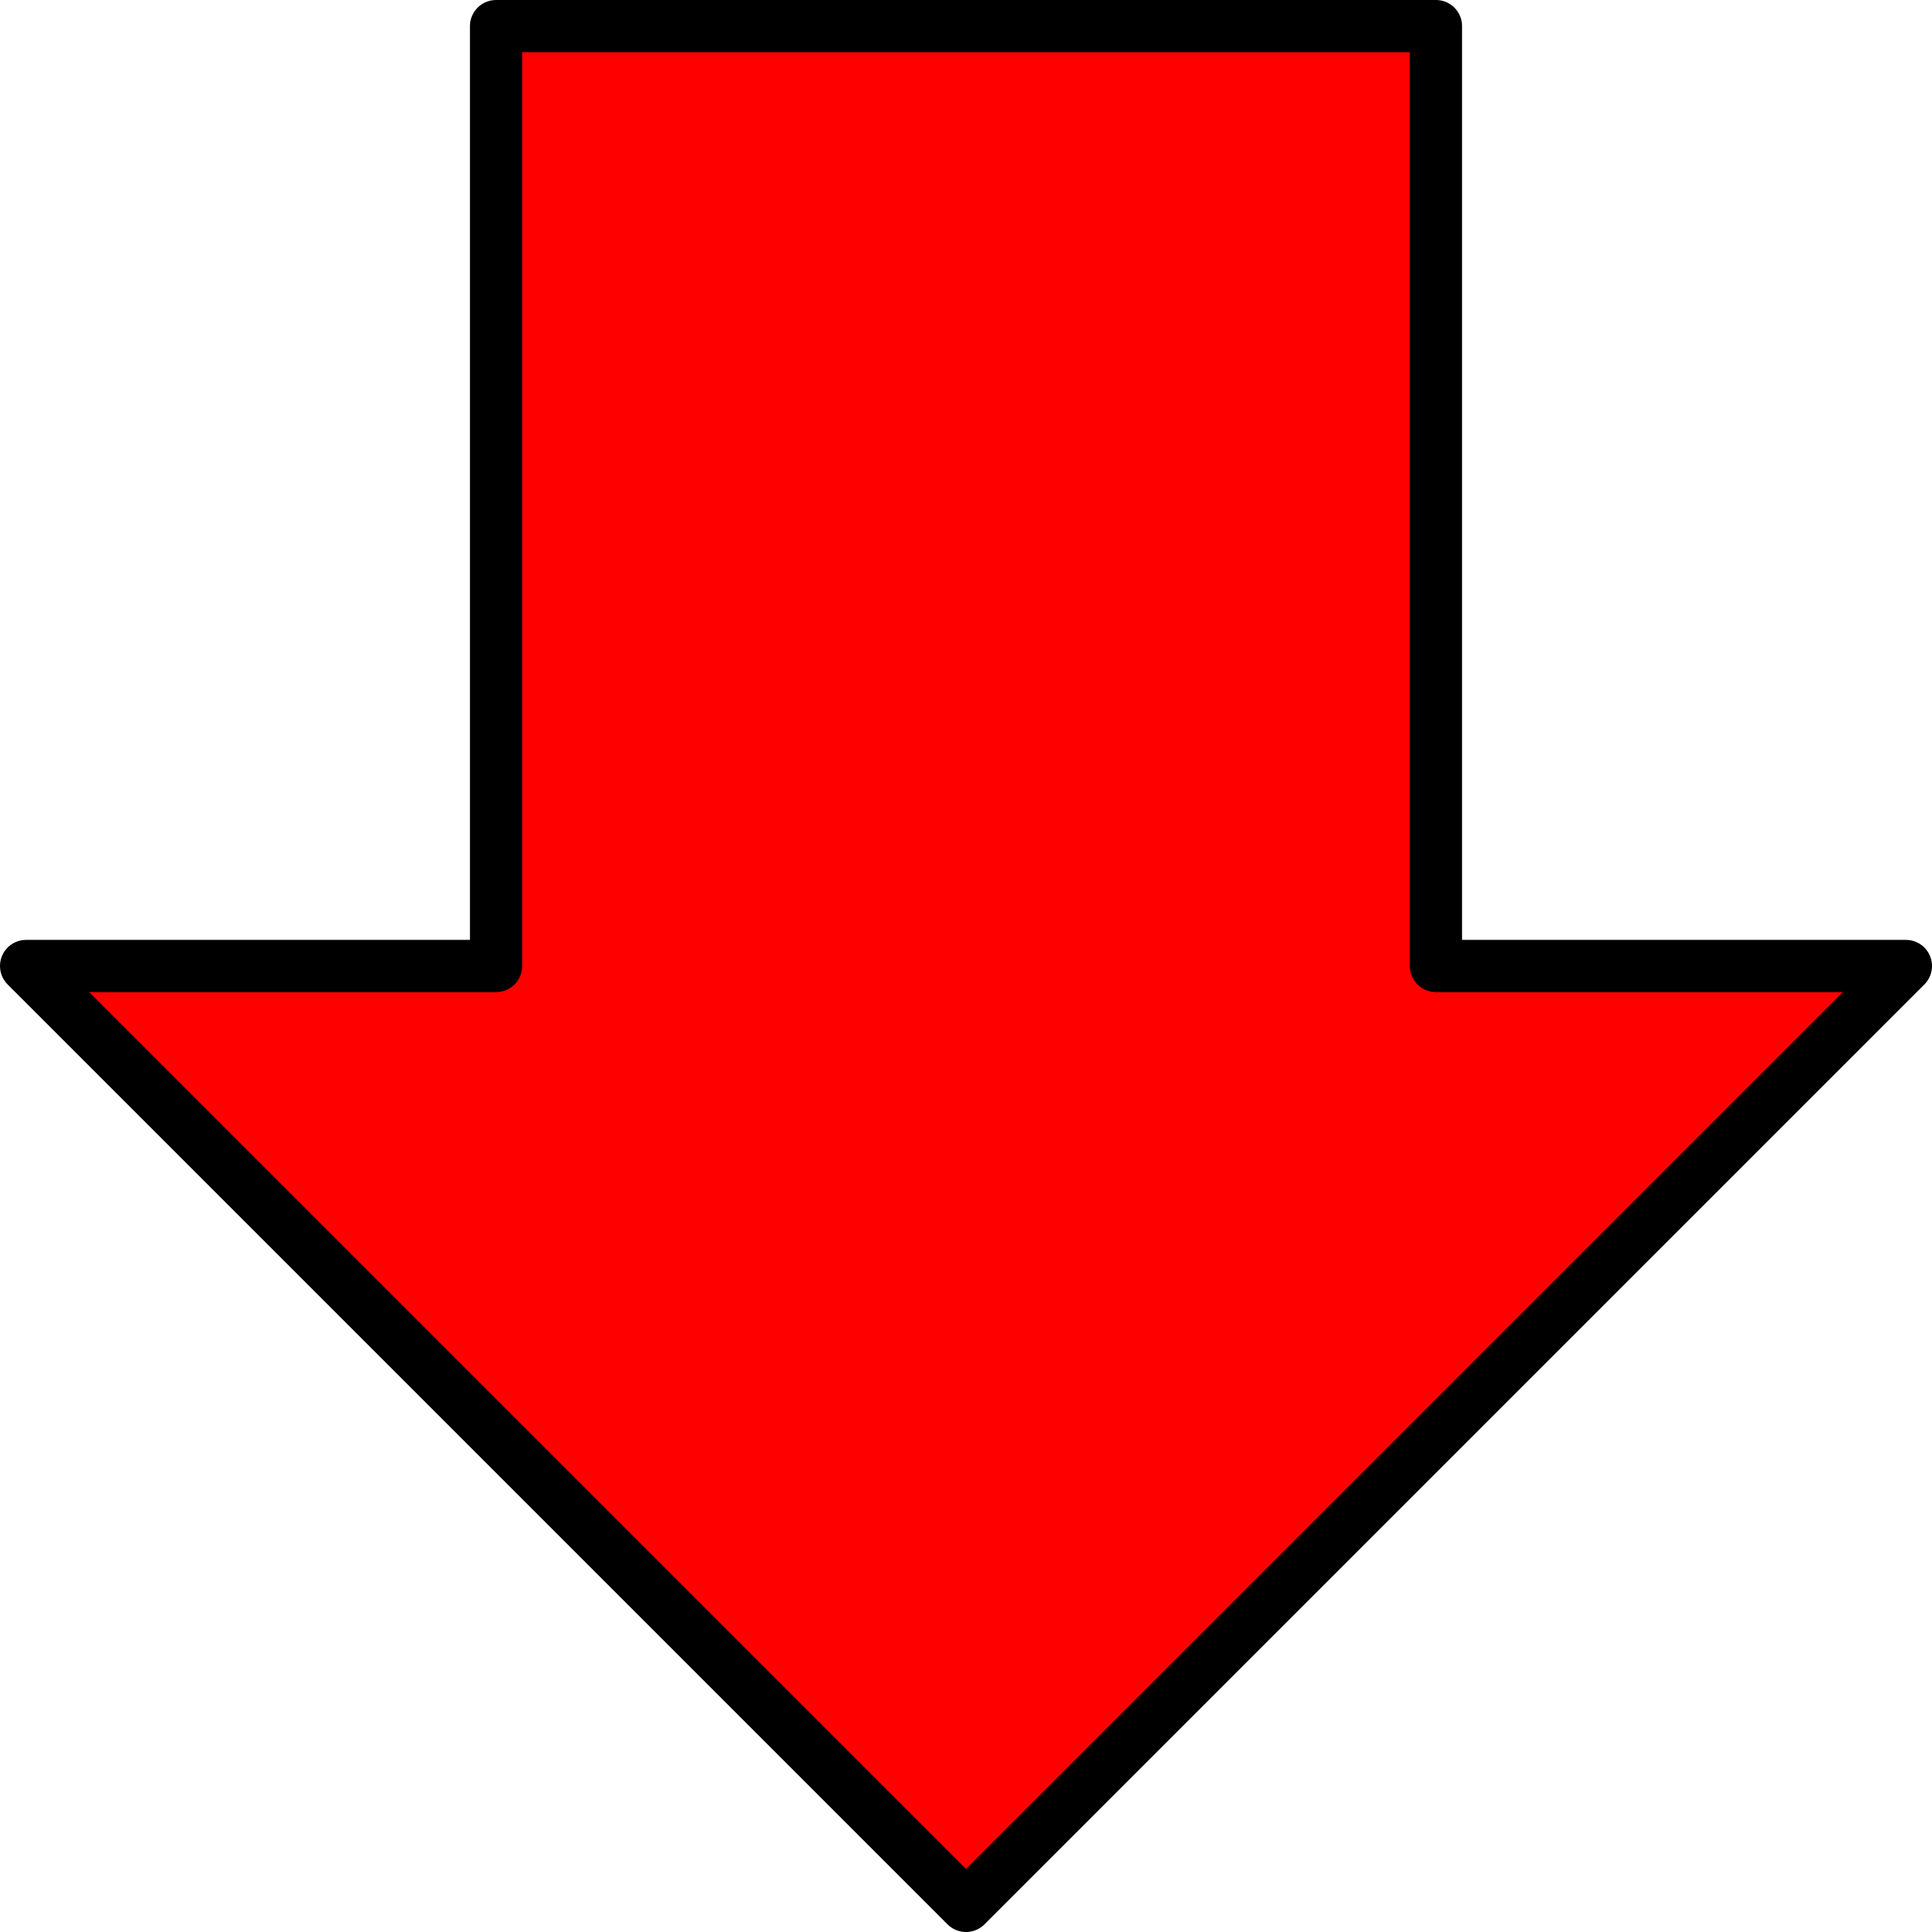 Red down arrow png. Icons free and downloads